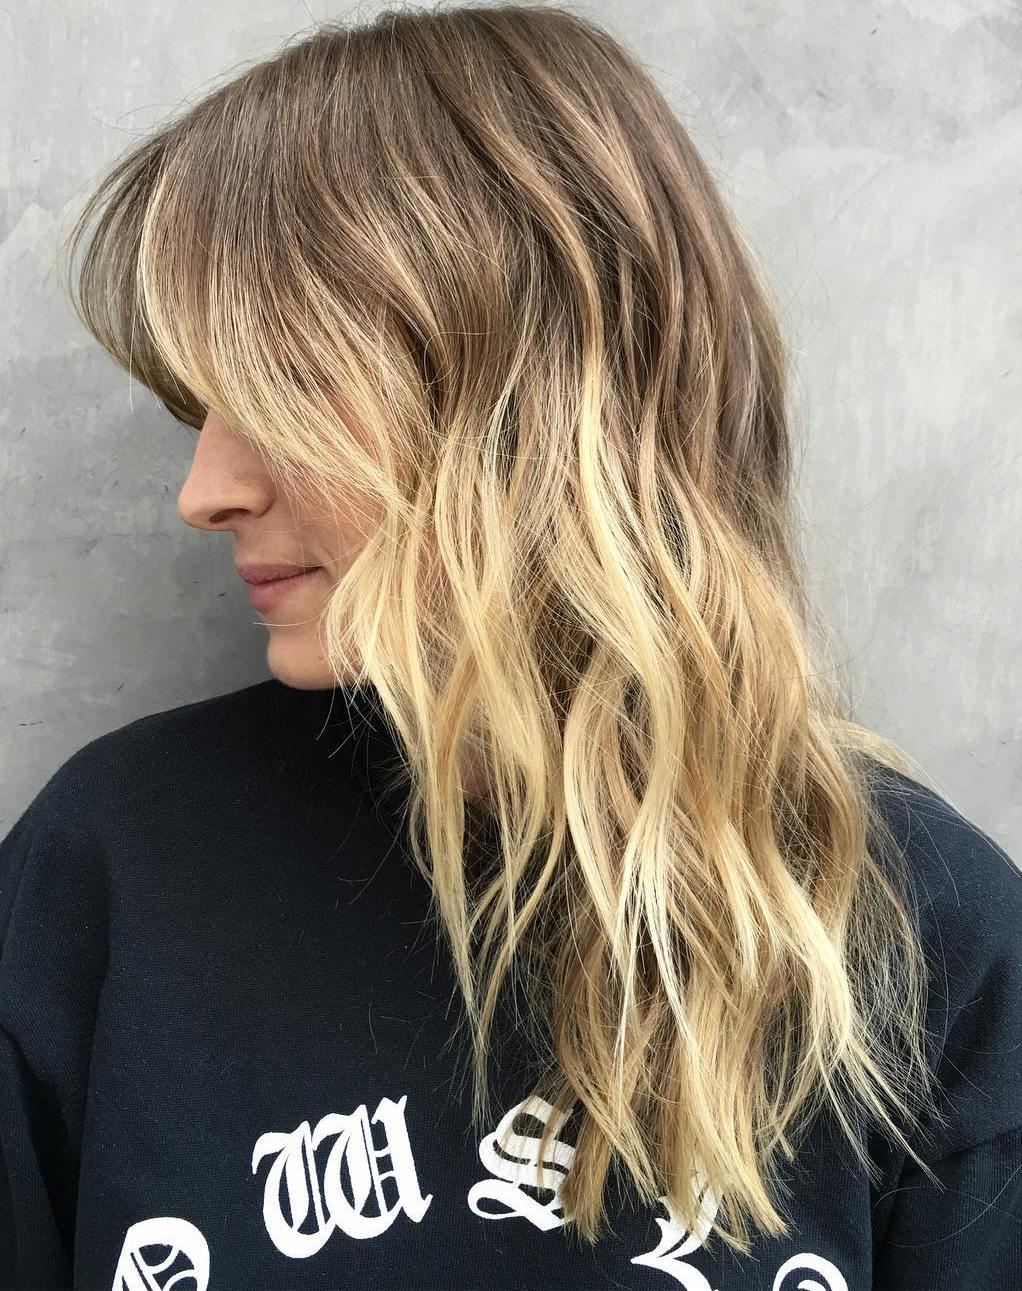 Beachy Bronde Layered Hair with Waves